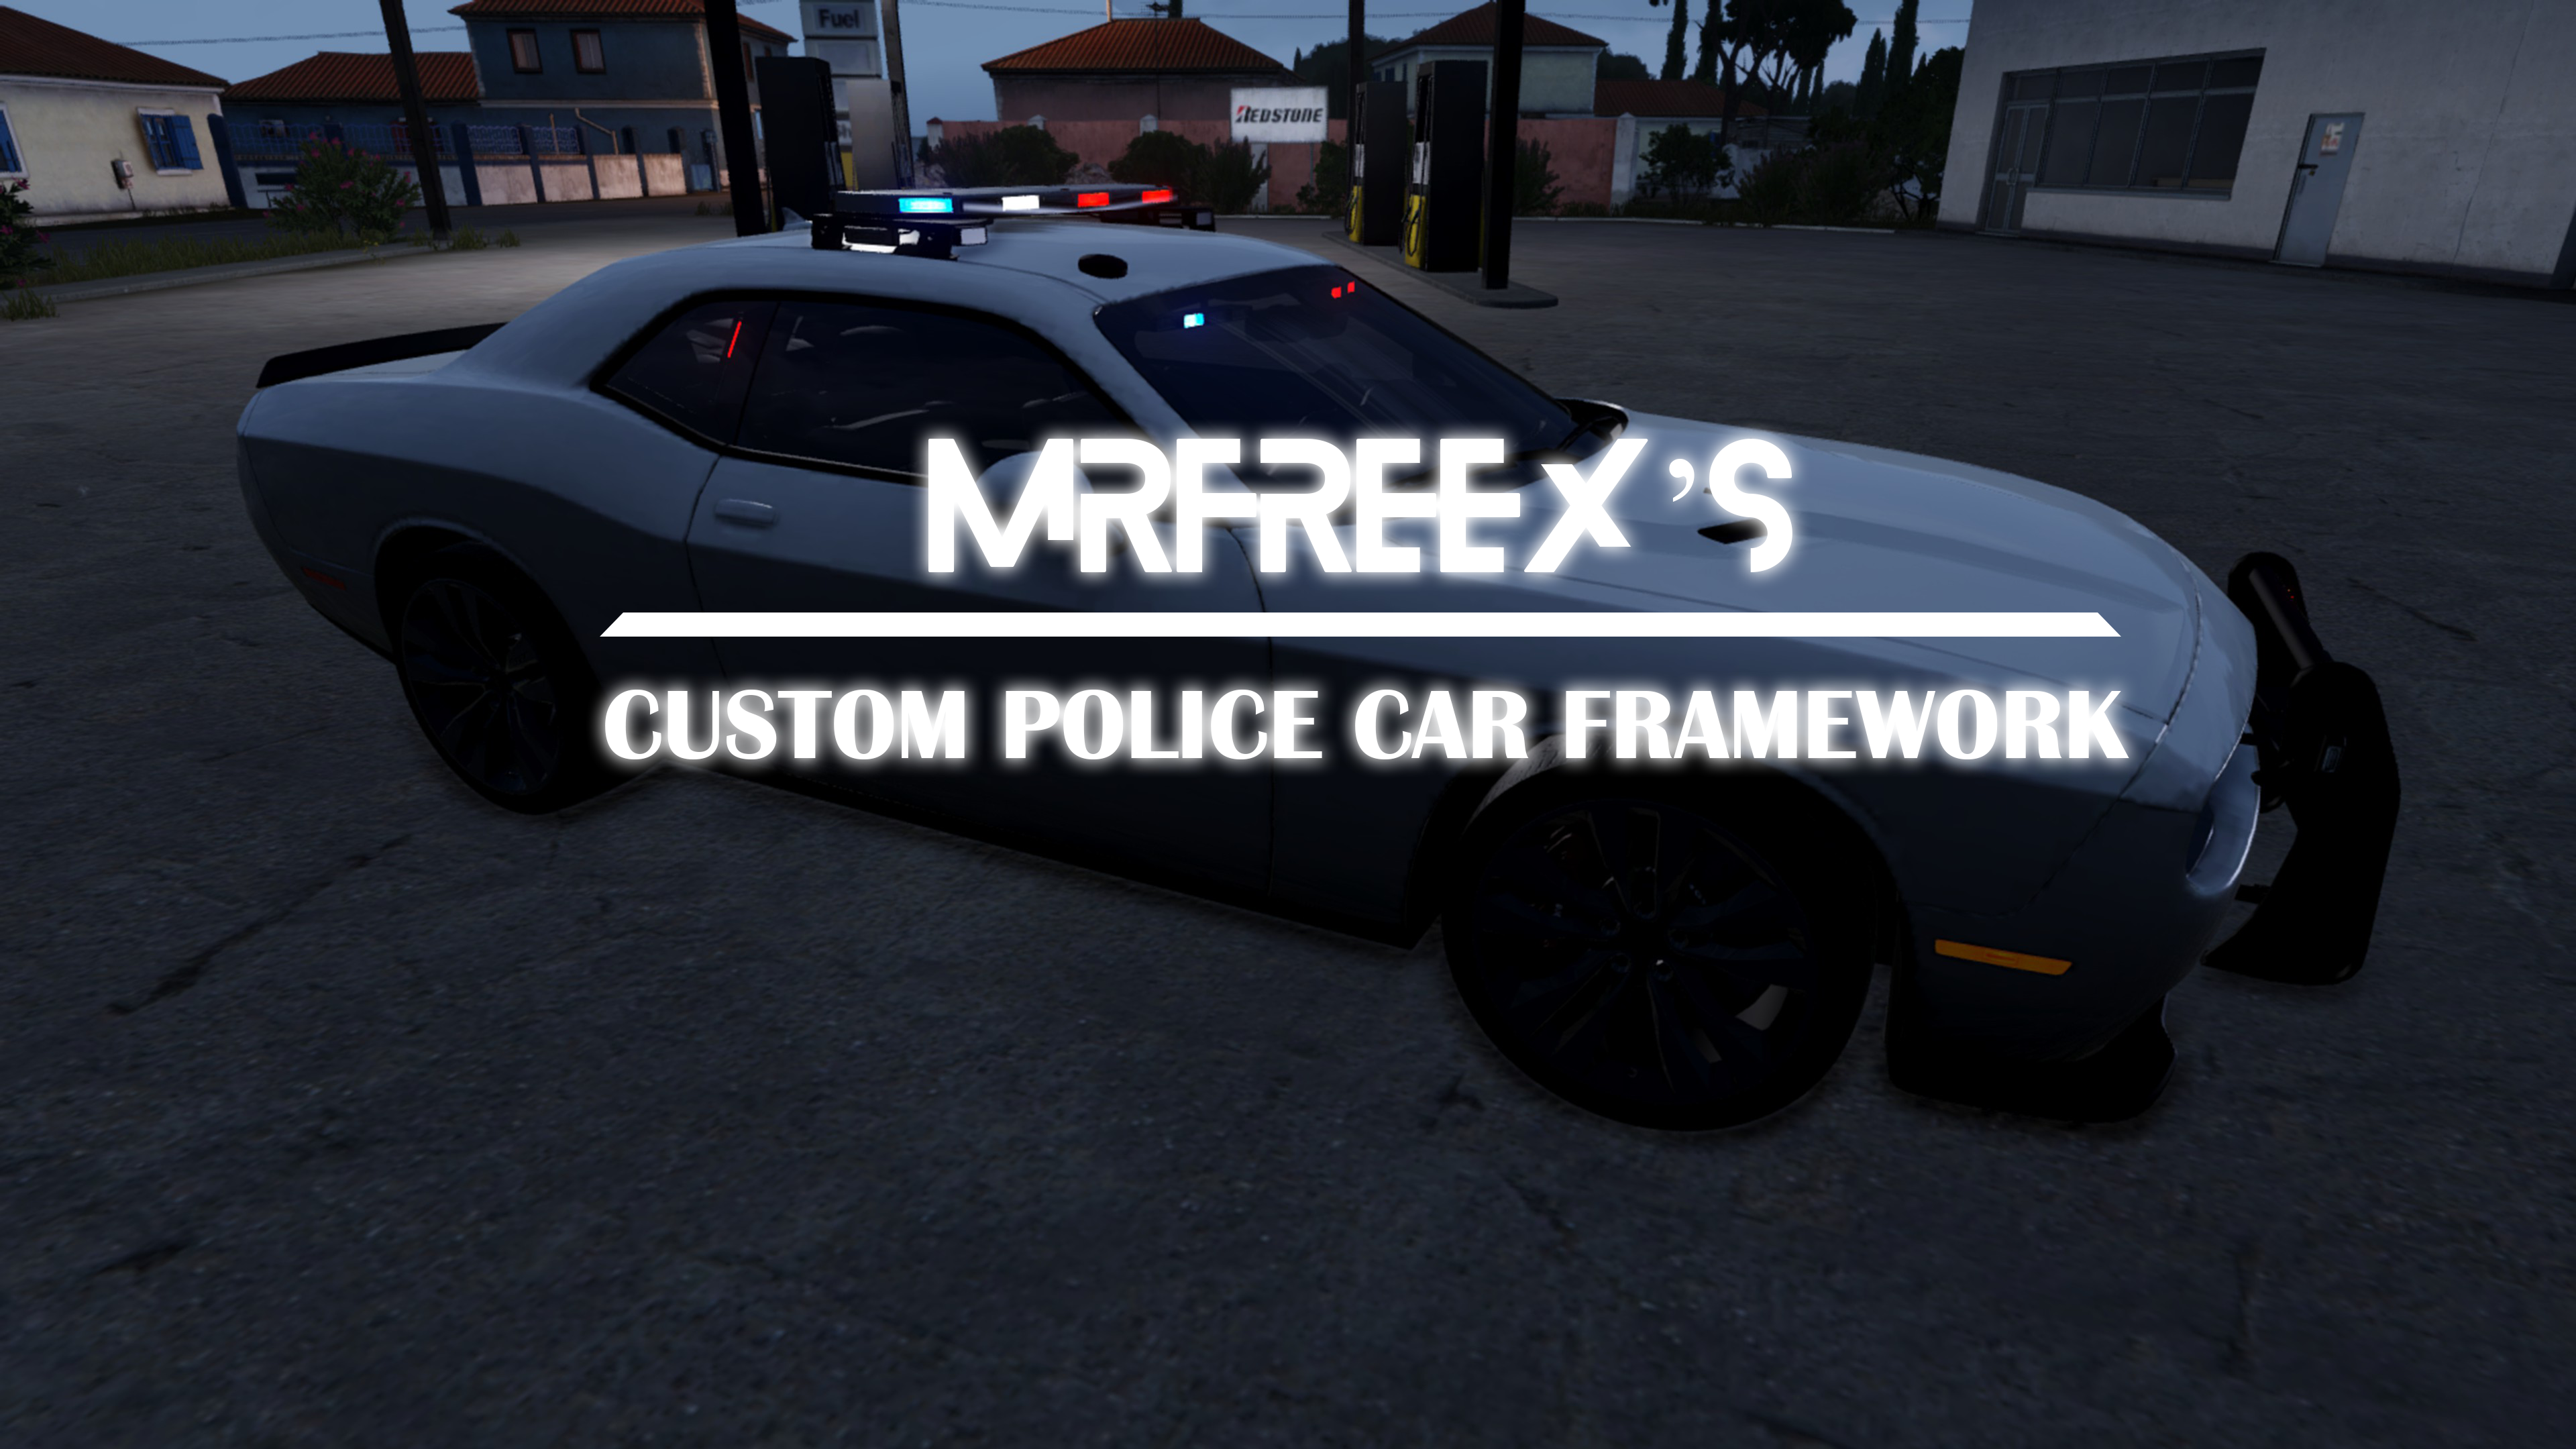 Police Cars Framework for D3S carpack